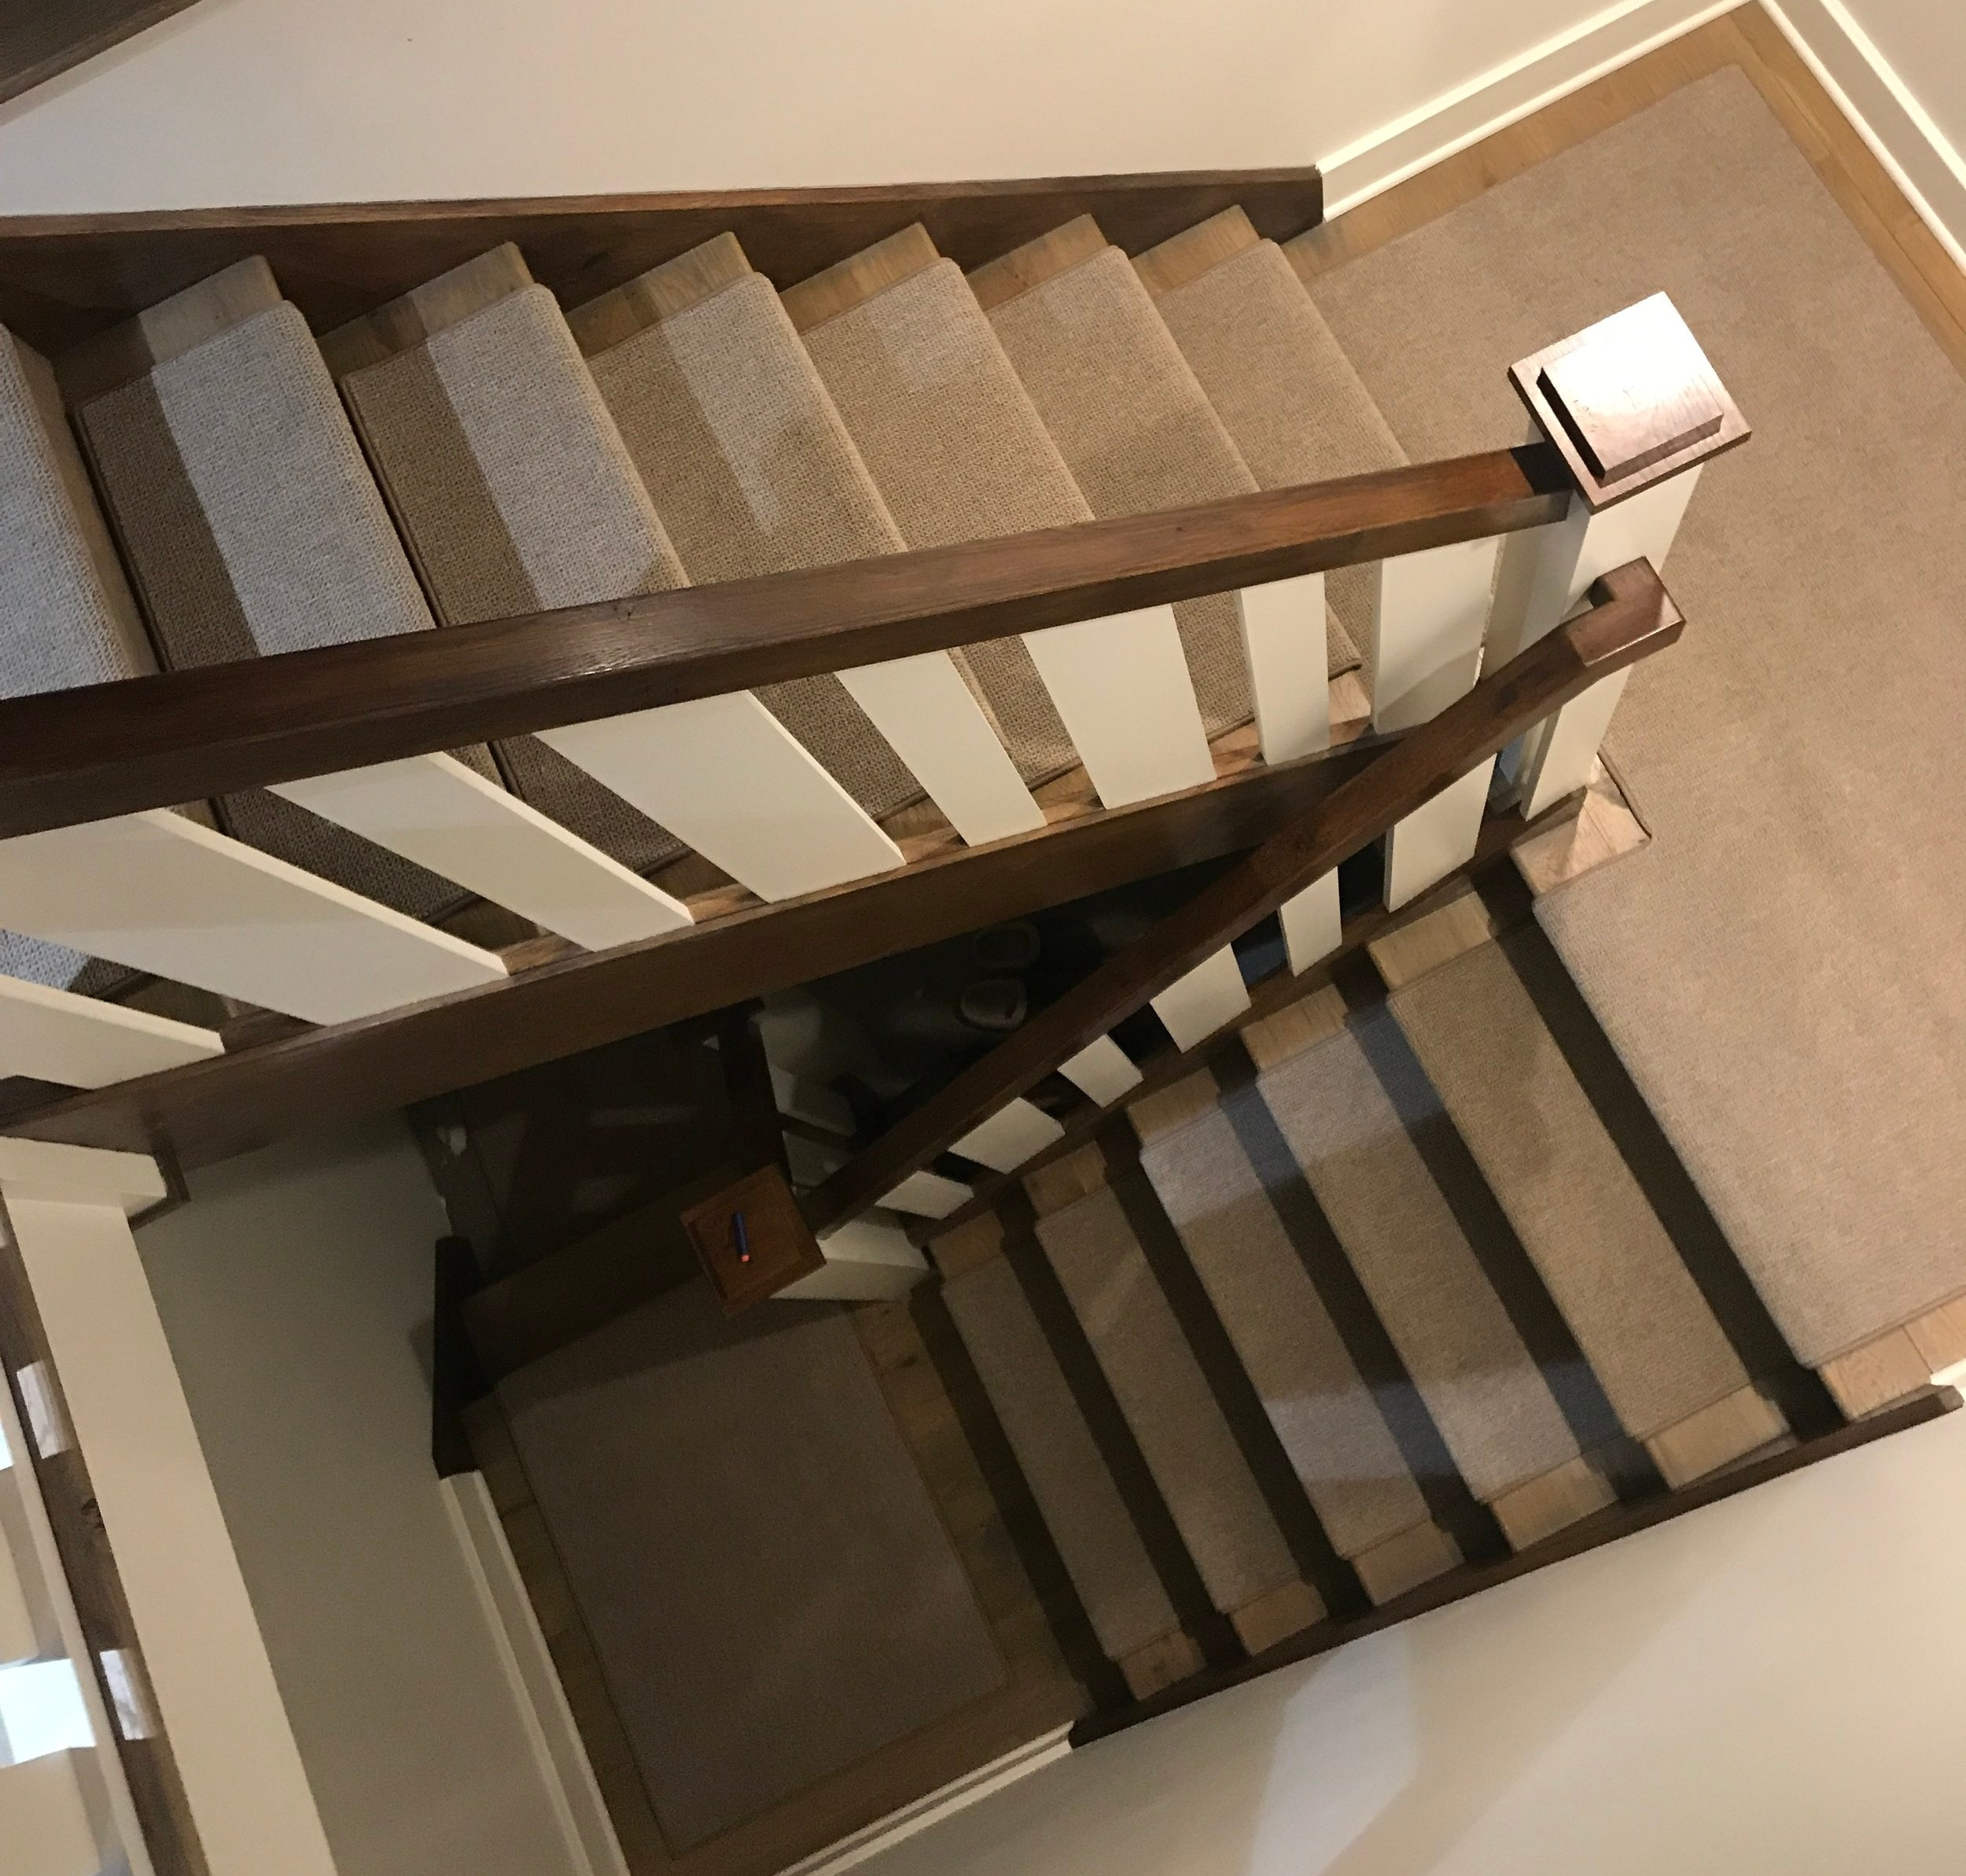 Indoor Carpet Stair Treads Oak Valley Designs | Designer Carpet For Stairs | Stair Railing | Farmhouse | Classical Design | Style New York | Rectangular Cord Treads